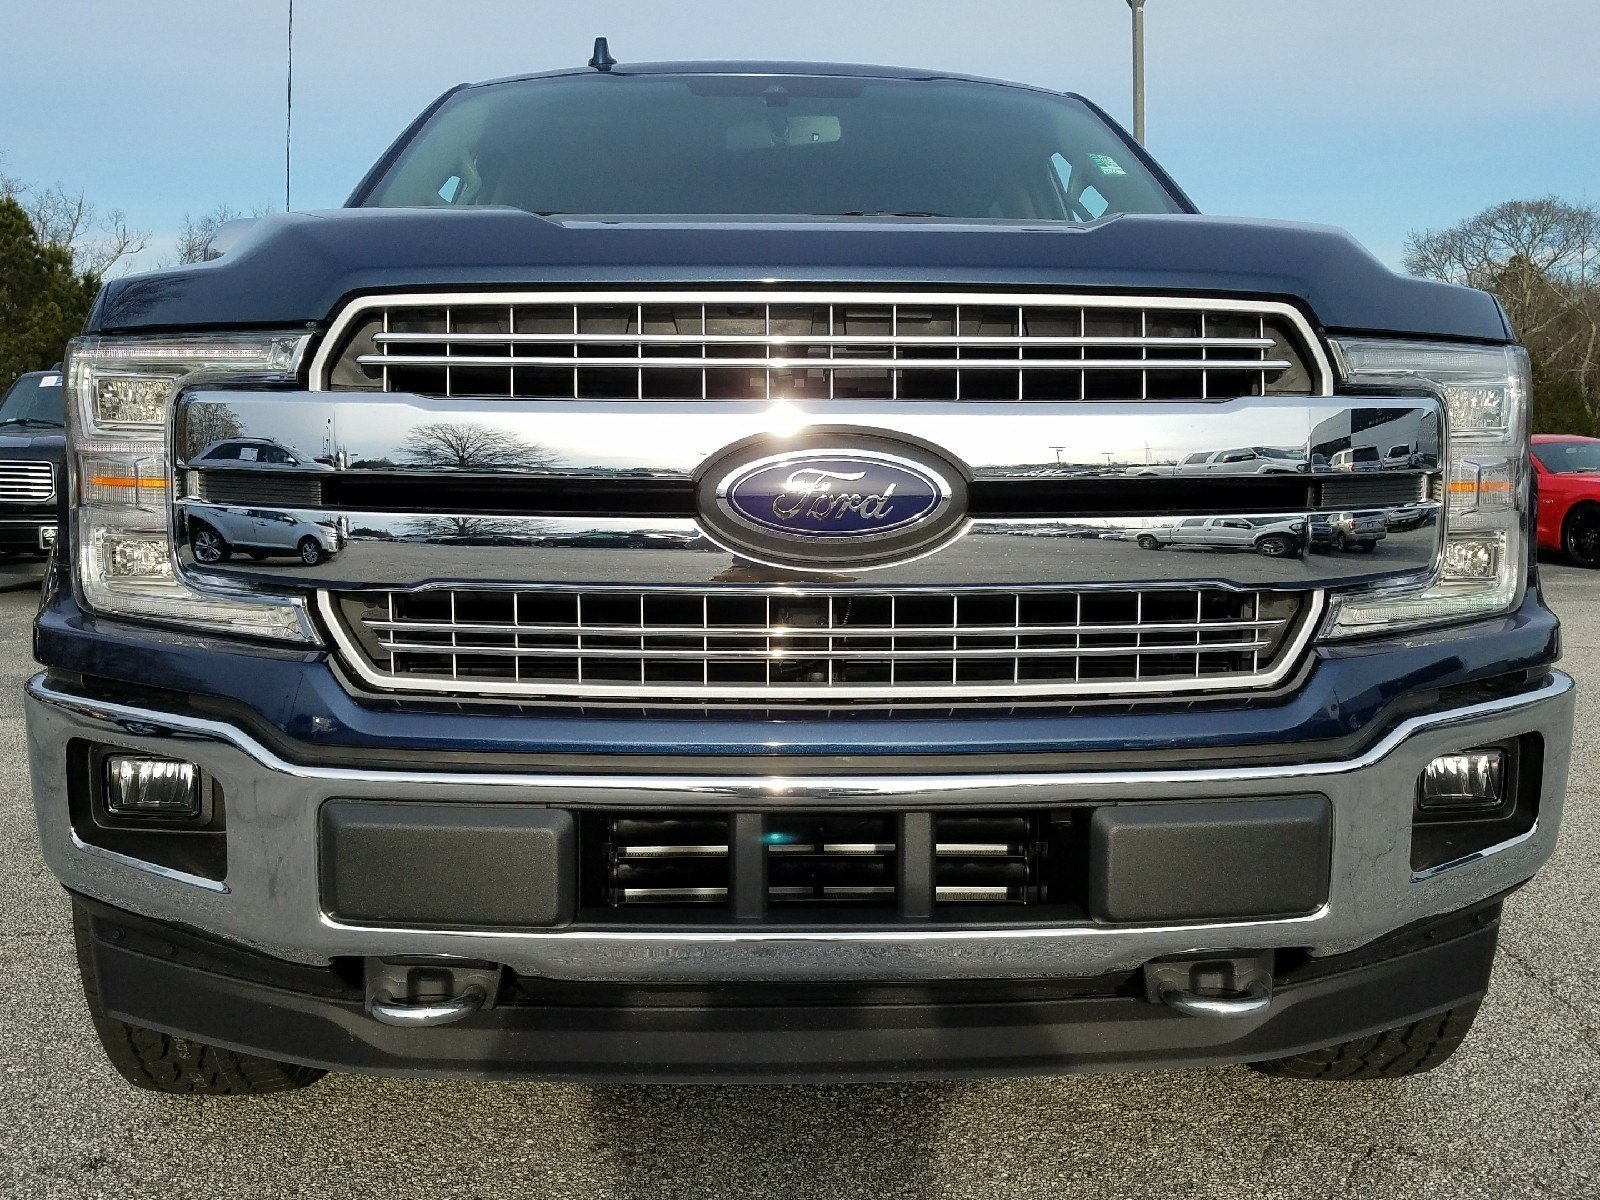 2018 Ford F-150 Lariat Truck 3.5L EcoBoost V6 engine with Auto Start/Stop Technology 4 Door 4X4 Automatic